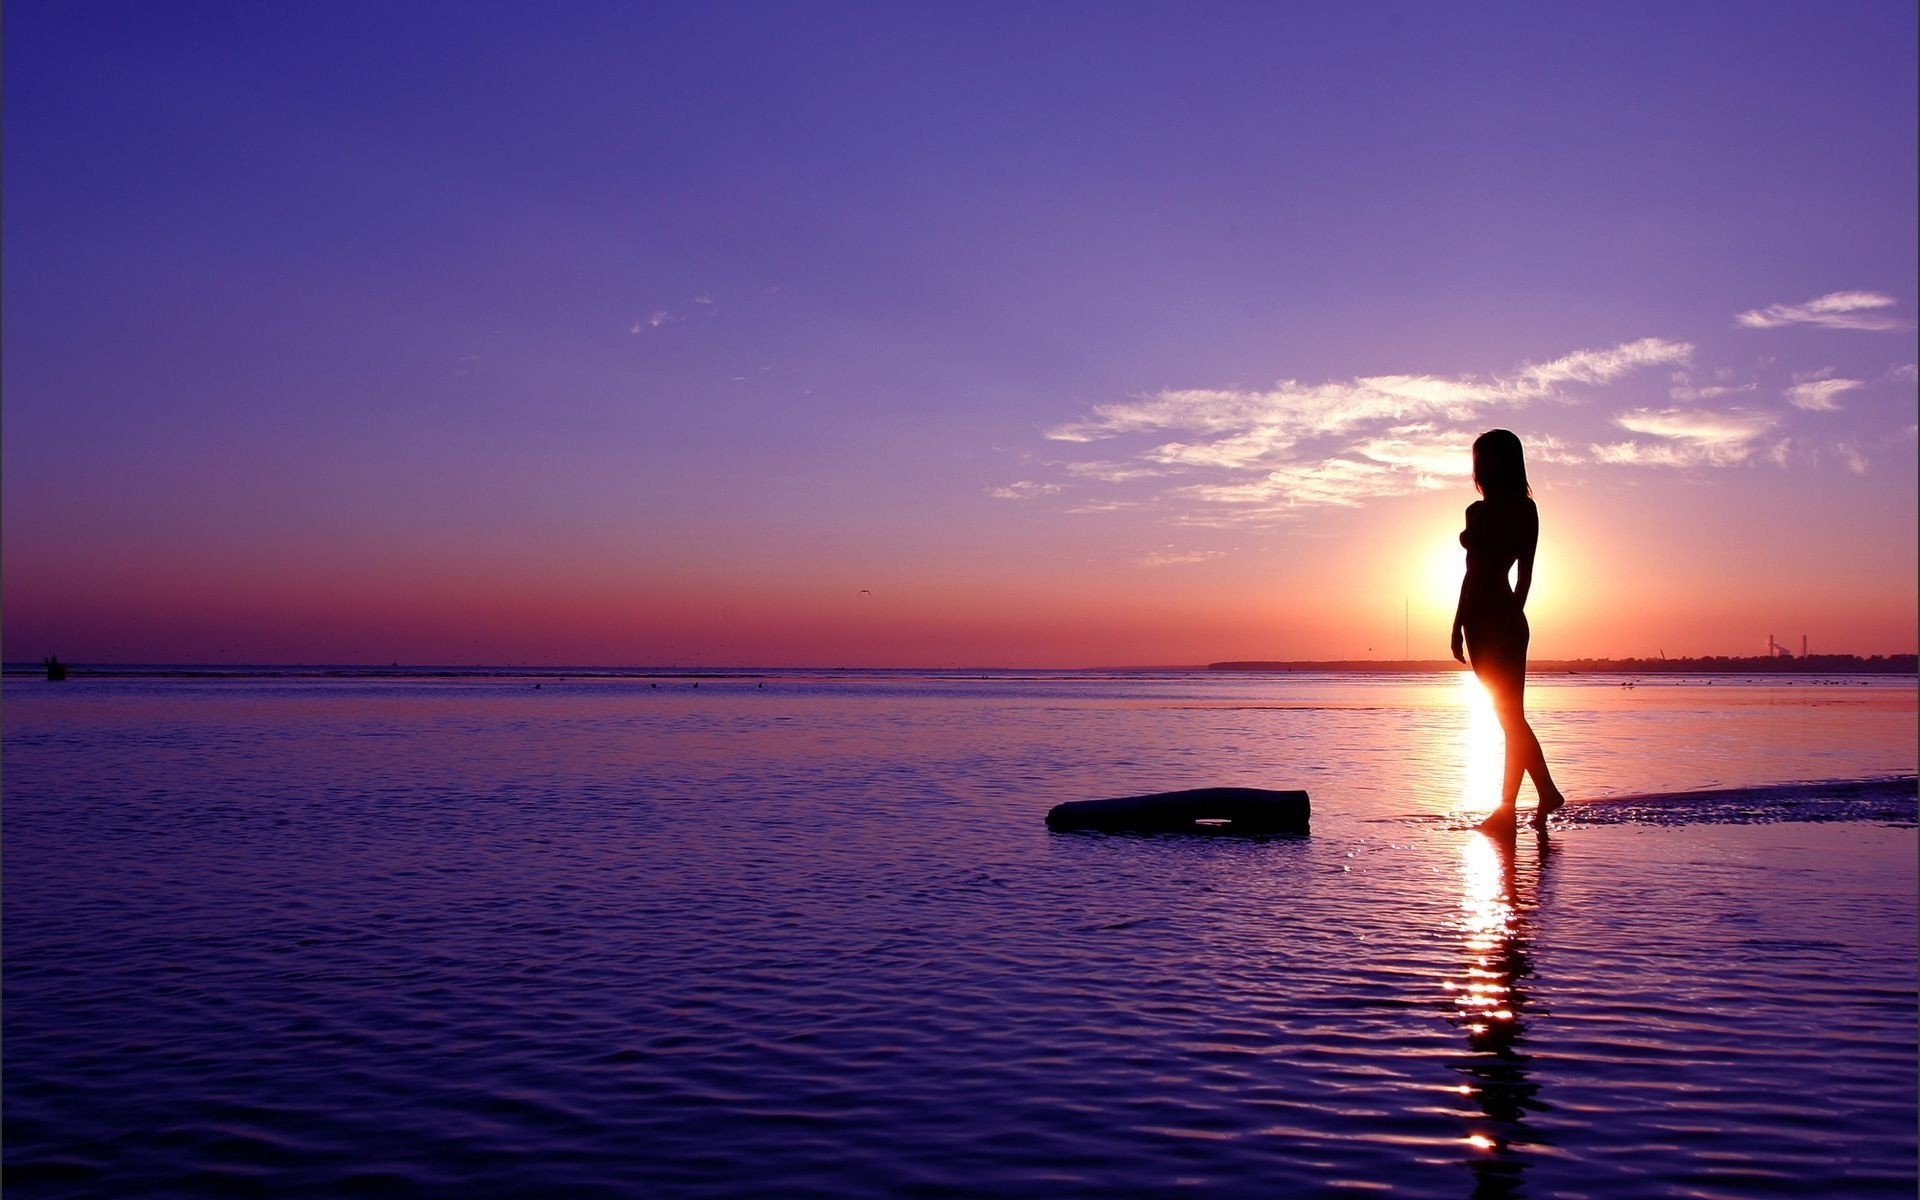 A Girl Admiring The Sunset IPhone Wallpapers For Free